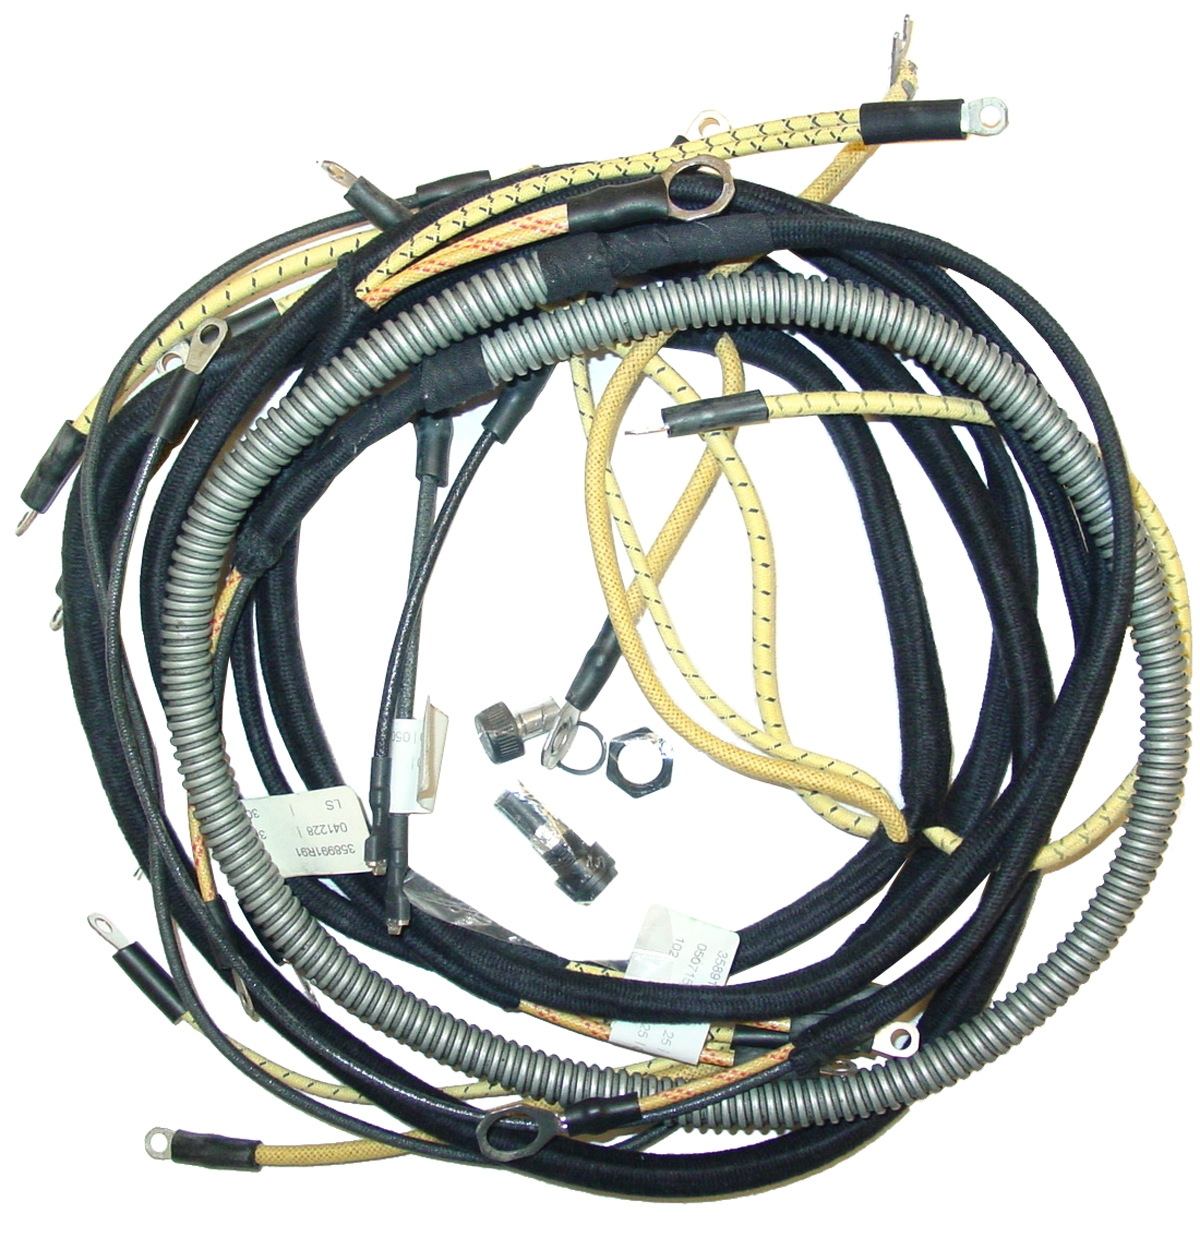 IHS488 wiring harness case ih parts case ih tractor parts international tractor wiring diagram at mifinder.co